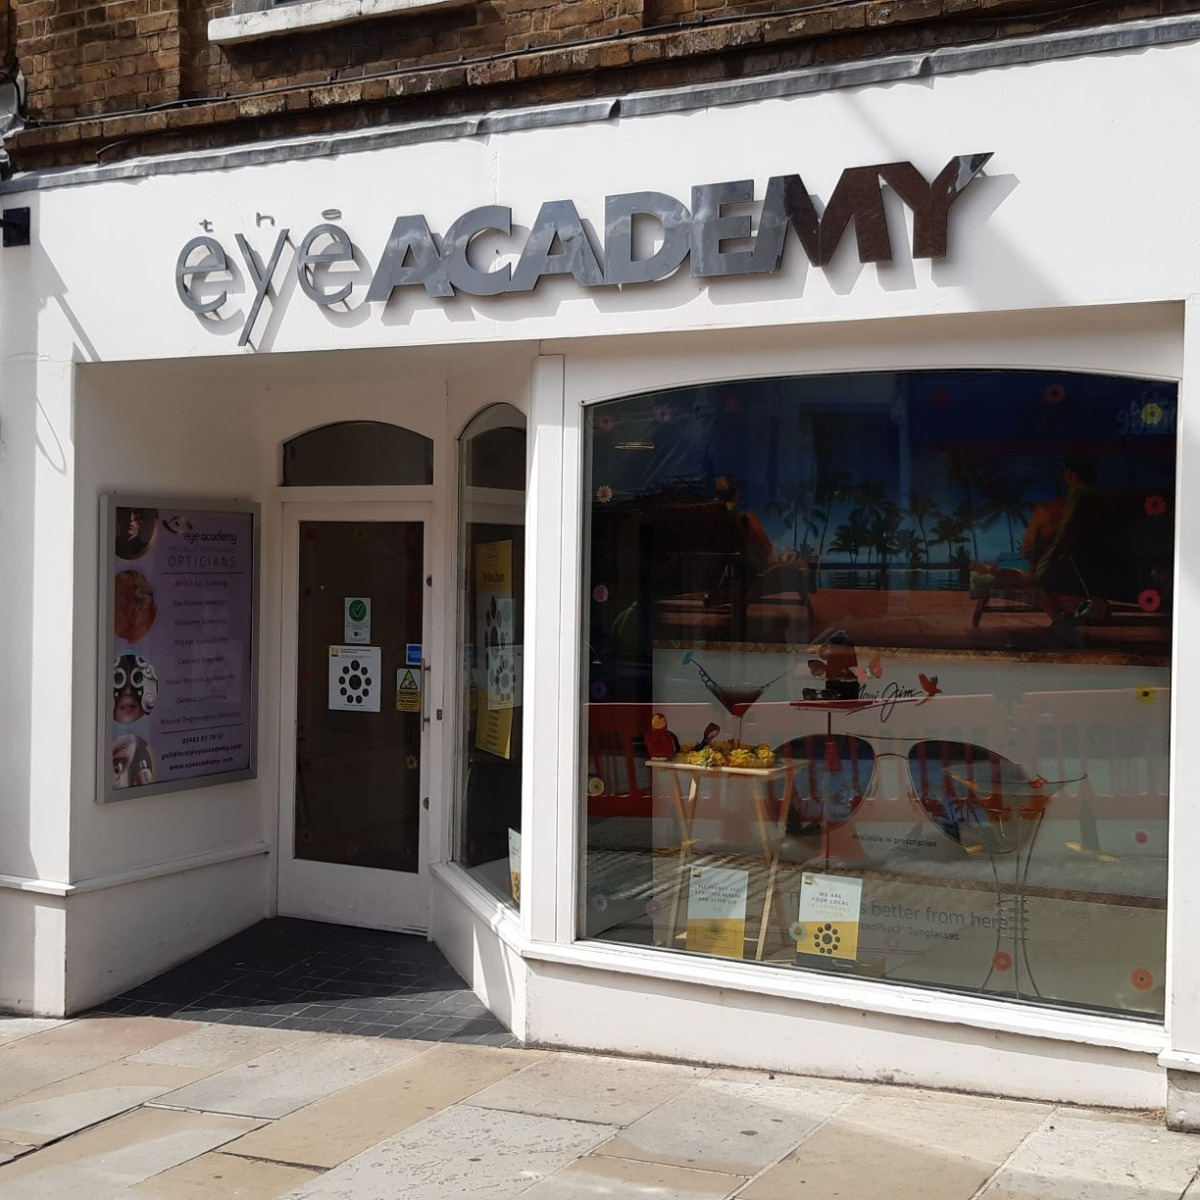 <h4>Contact Eye Academy Opticians Guildford</h4> <p>Phone: 01483 57 79 57<br>Email: guildford@eyeacademy.com<br>Address: 45 High Street, Guildford, GU1 3DY</p> <h4>Opening Hours</h4> <p>Monday to Saturday:9.00am - 5.30pm</p> <p>Sunday's and Bank Holidays - Closed</p> <h4>Additional Information</h4> <ul> <li>Wheelchair and disabled access</li> <li>A short walk from Guildford train station</li> </ul>